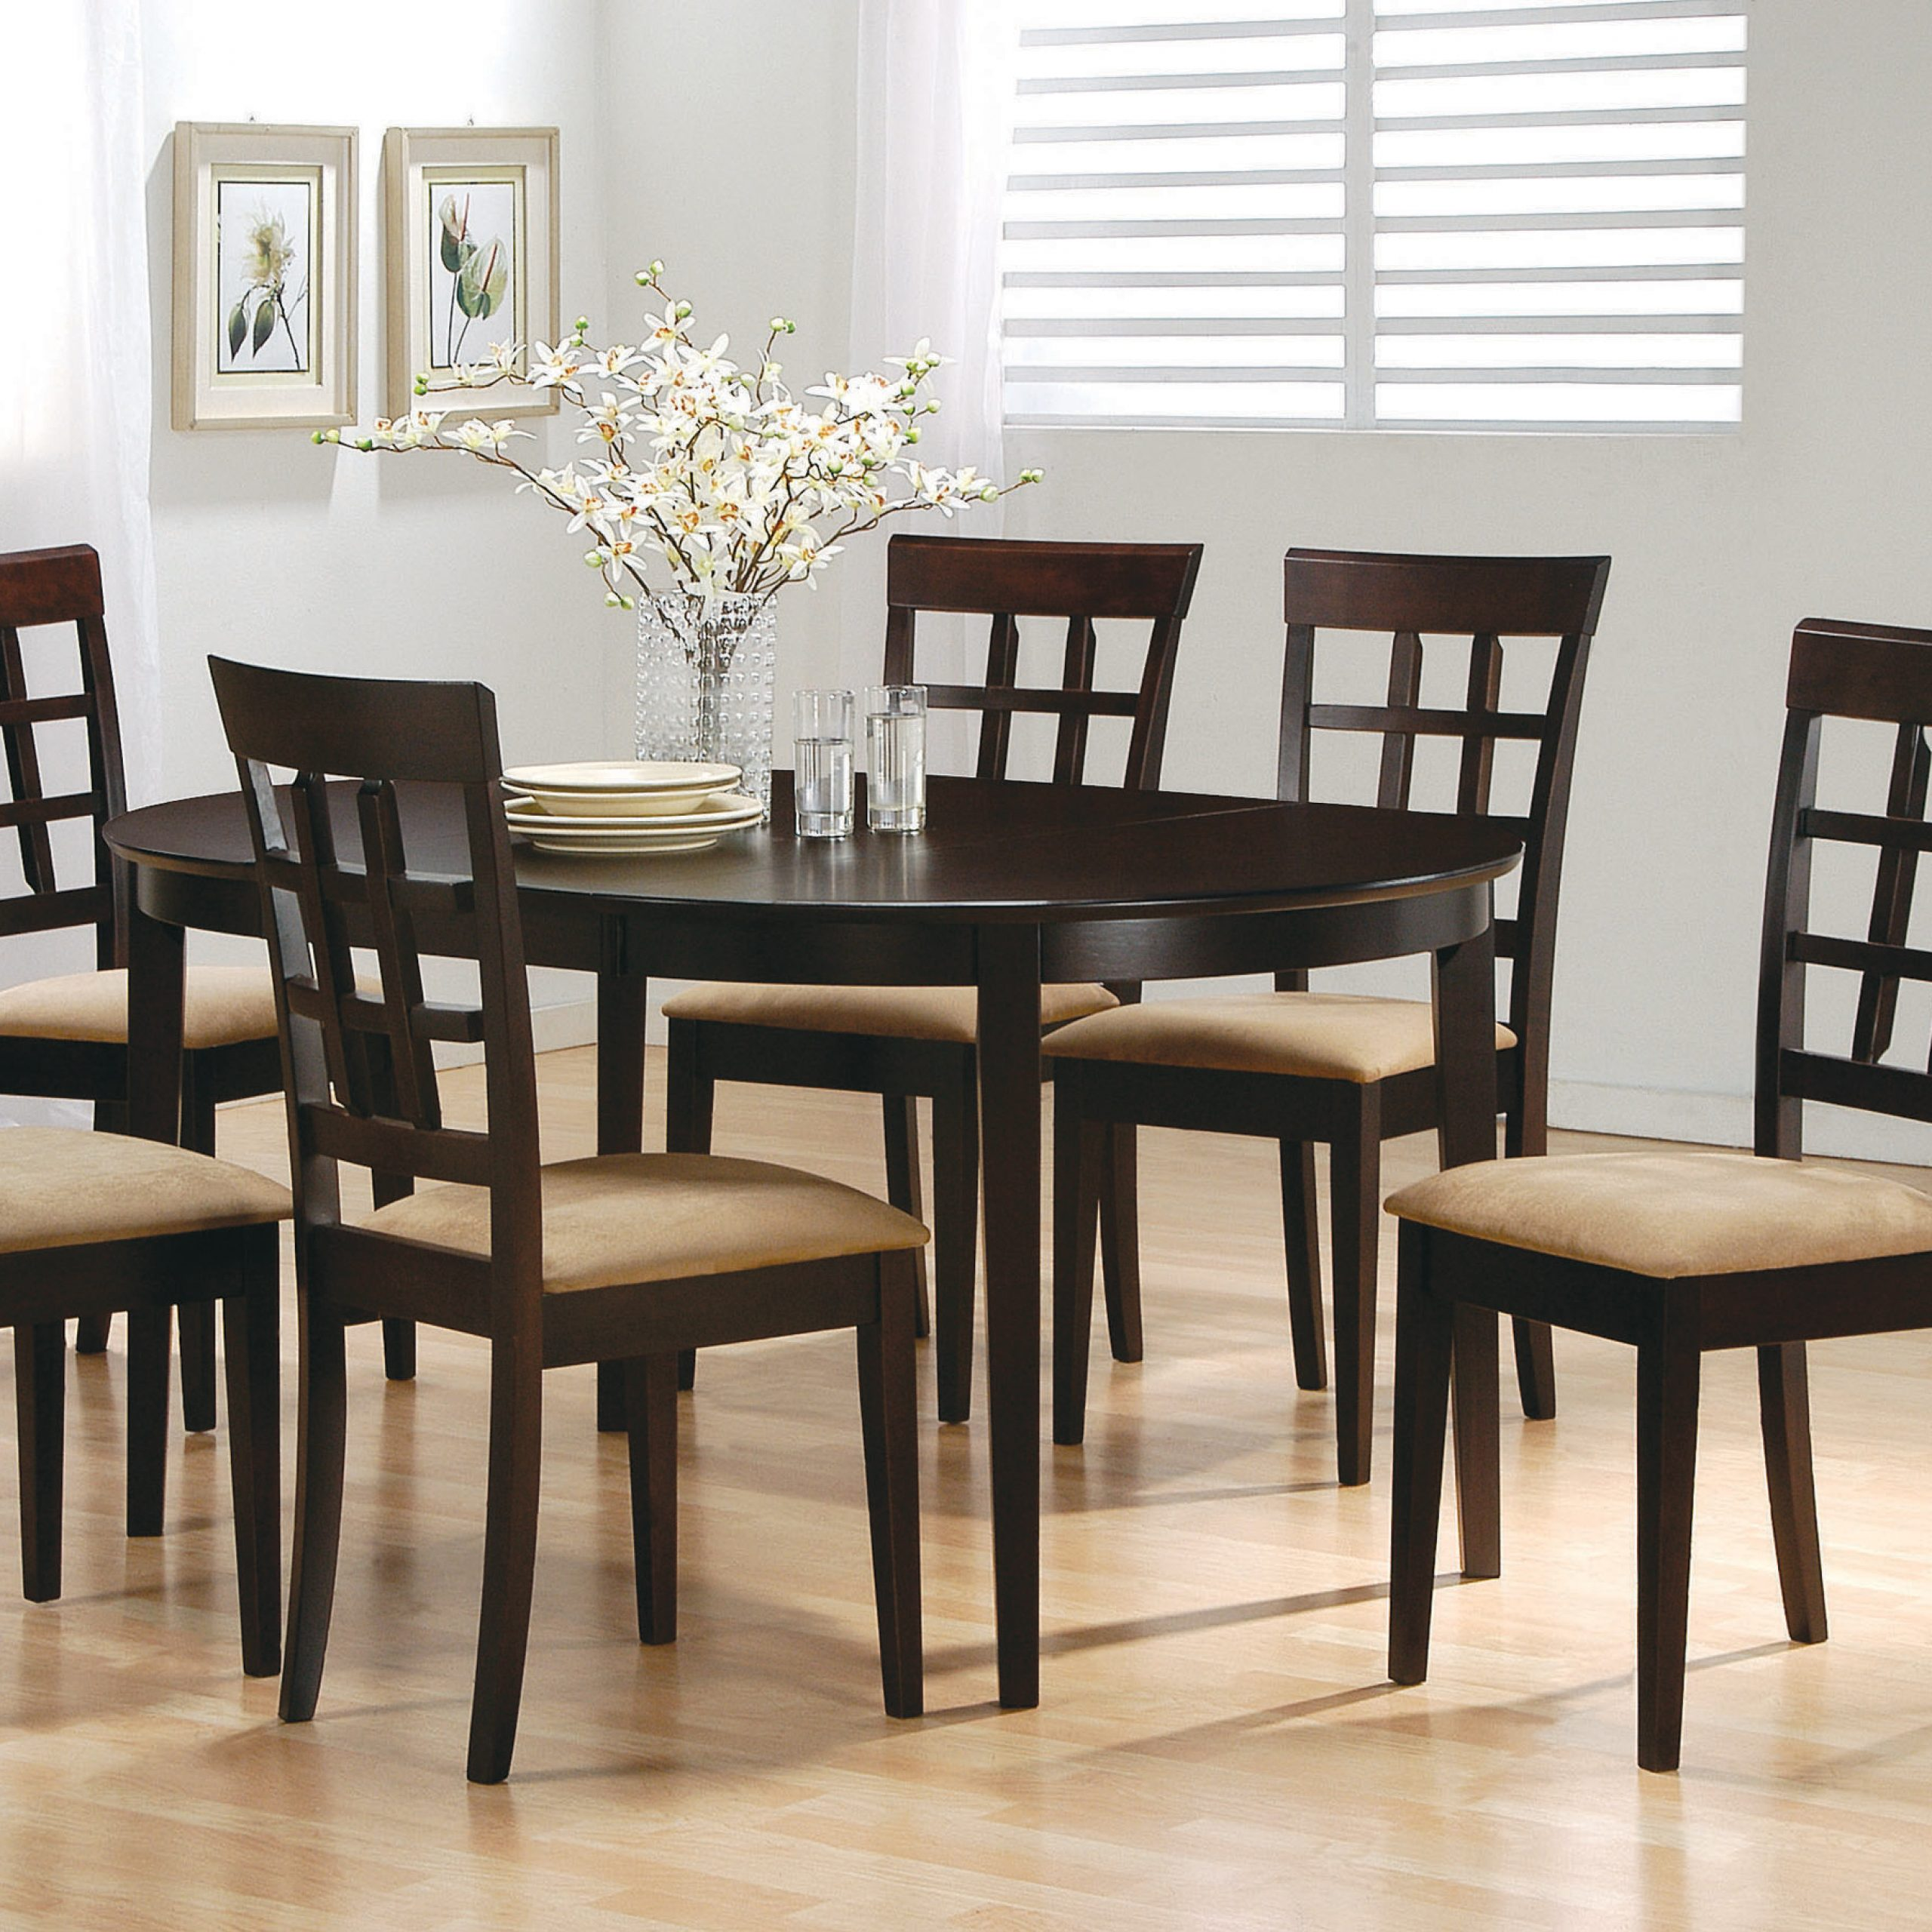 Cappuccino Finish Wood Classic Casual Dining Tables Regarding Well Known Gabriel Oval Dining Table Cappuccino – Coaster Fine Furniture (Gallery 6 of 30)